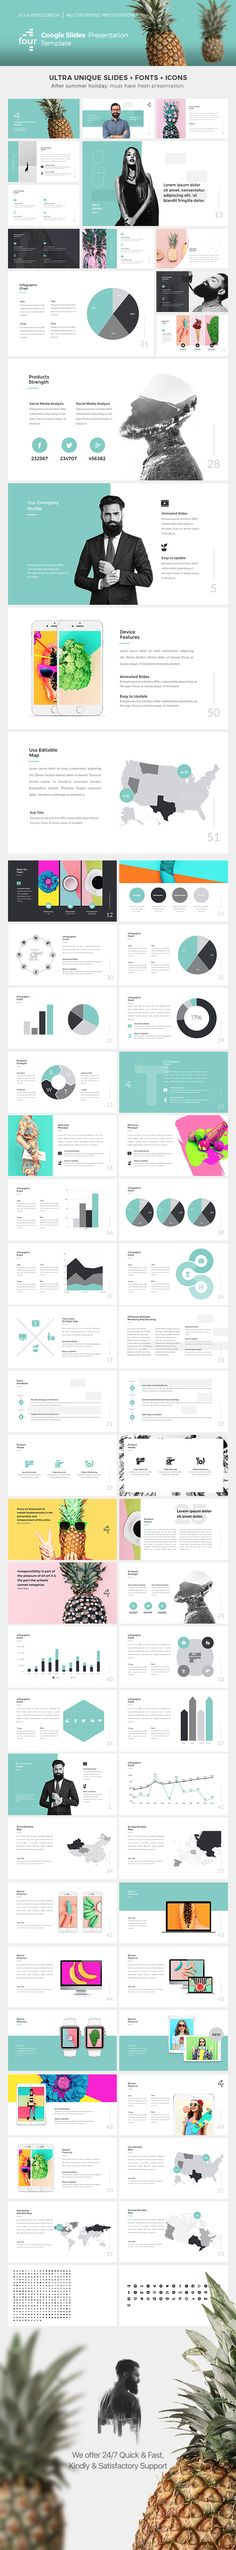 Corporate Google Slides Template